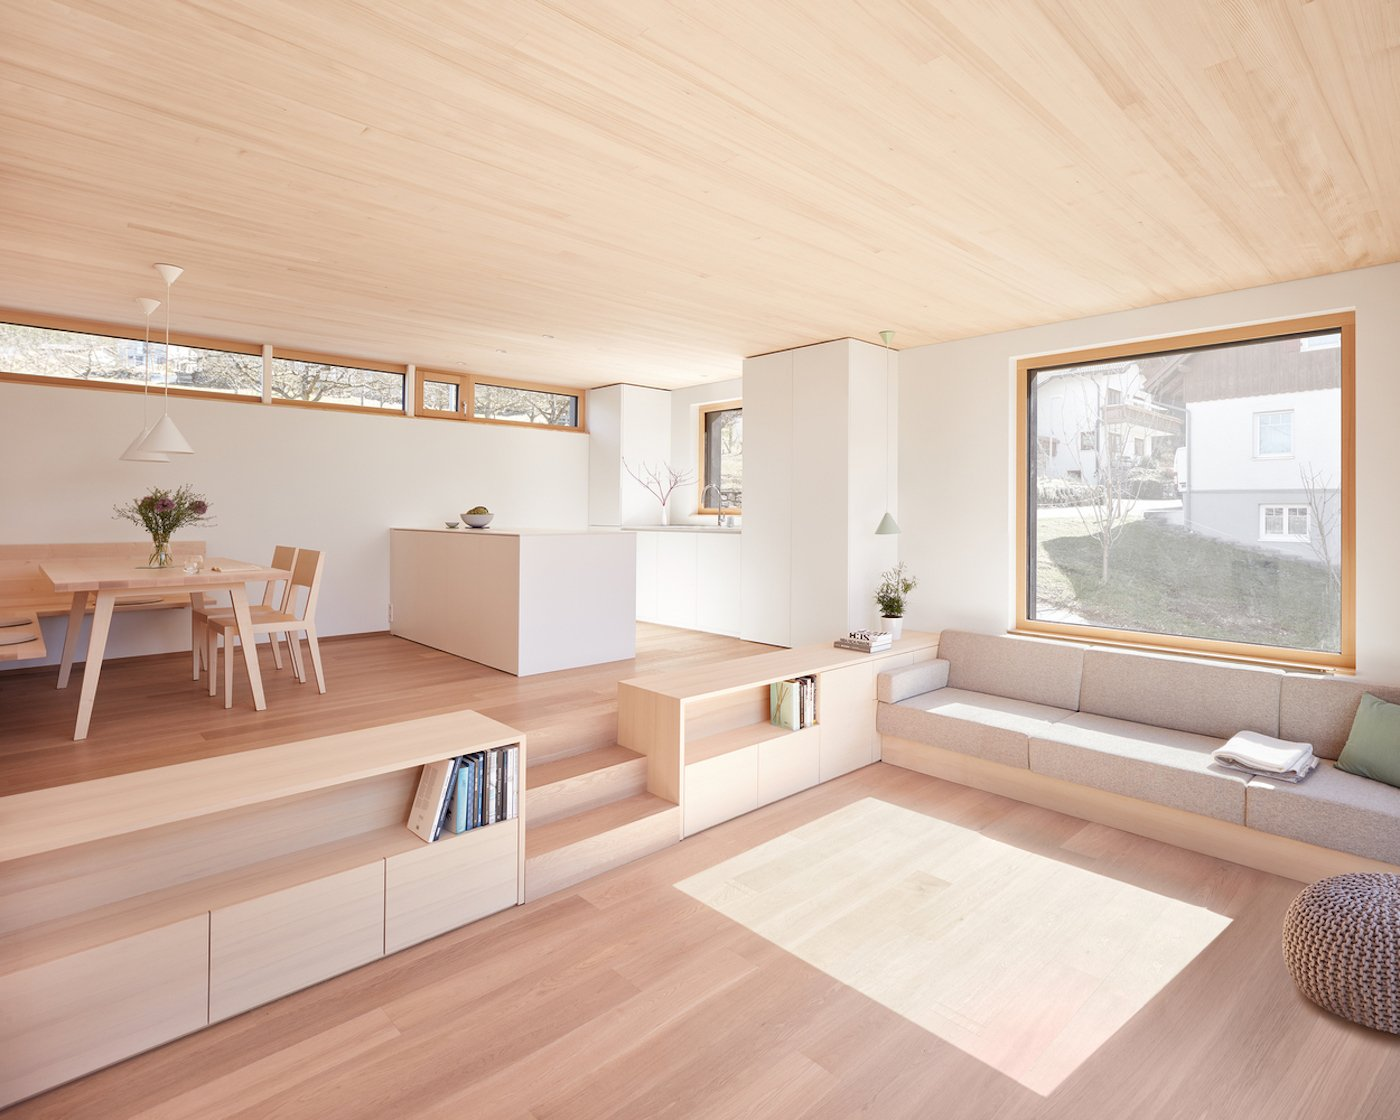 Lounge room and kitchen with timber floor